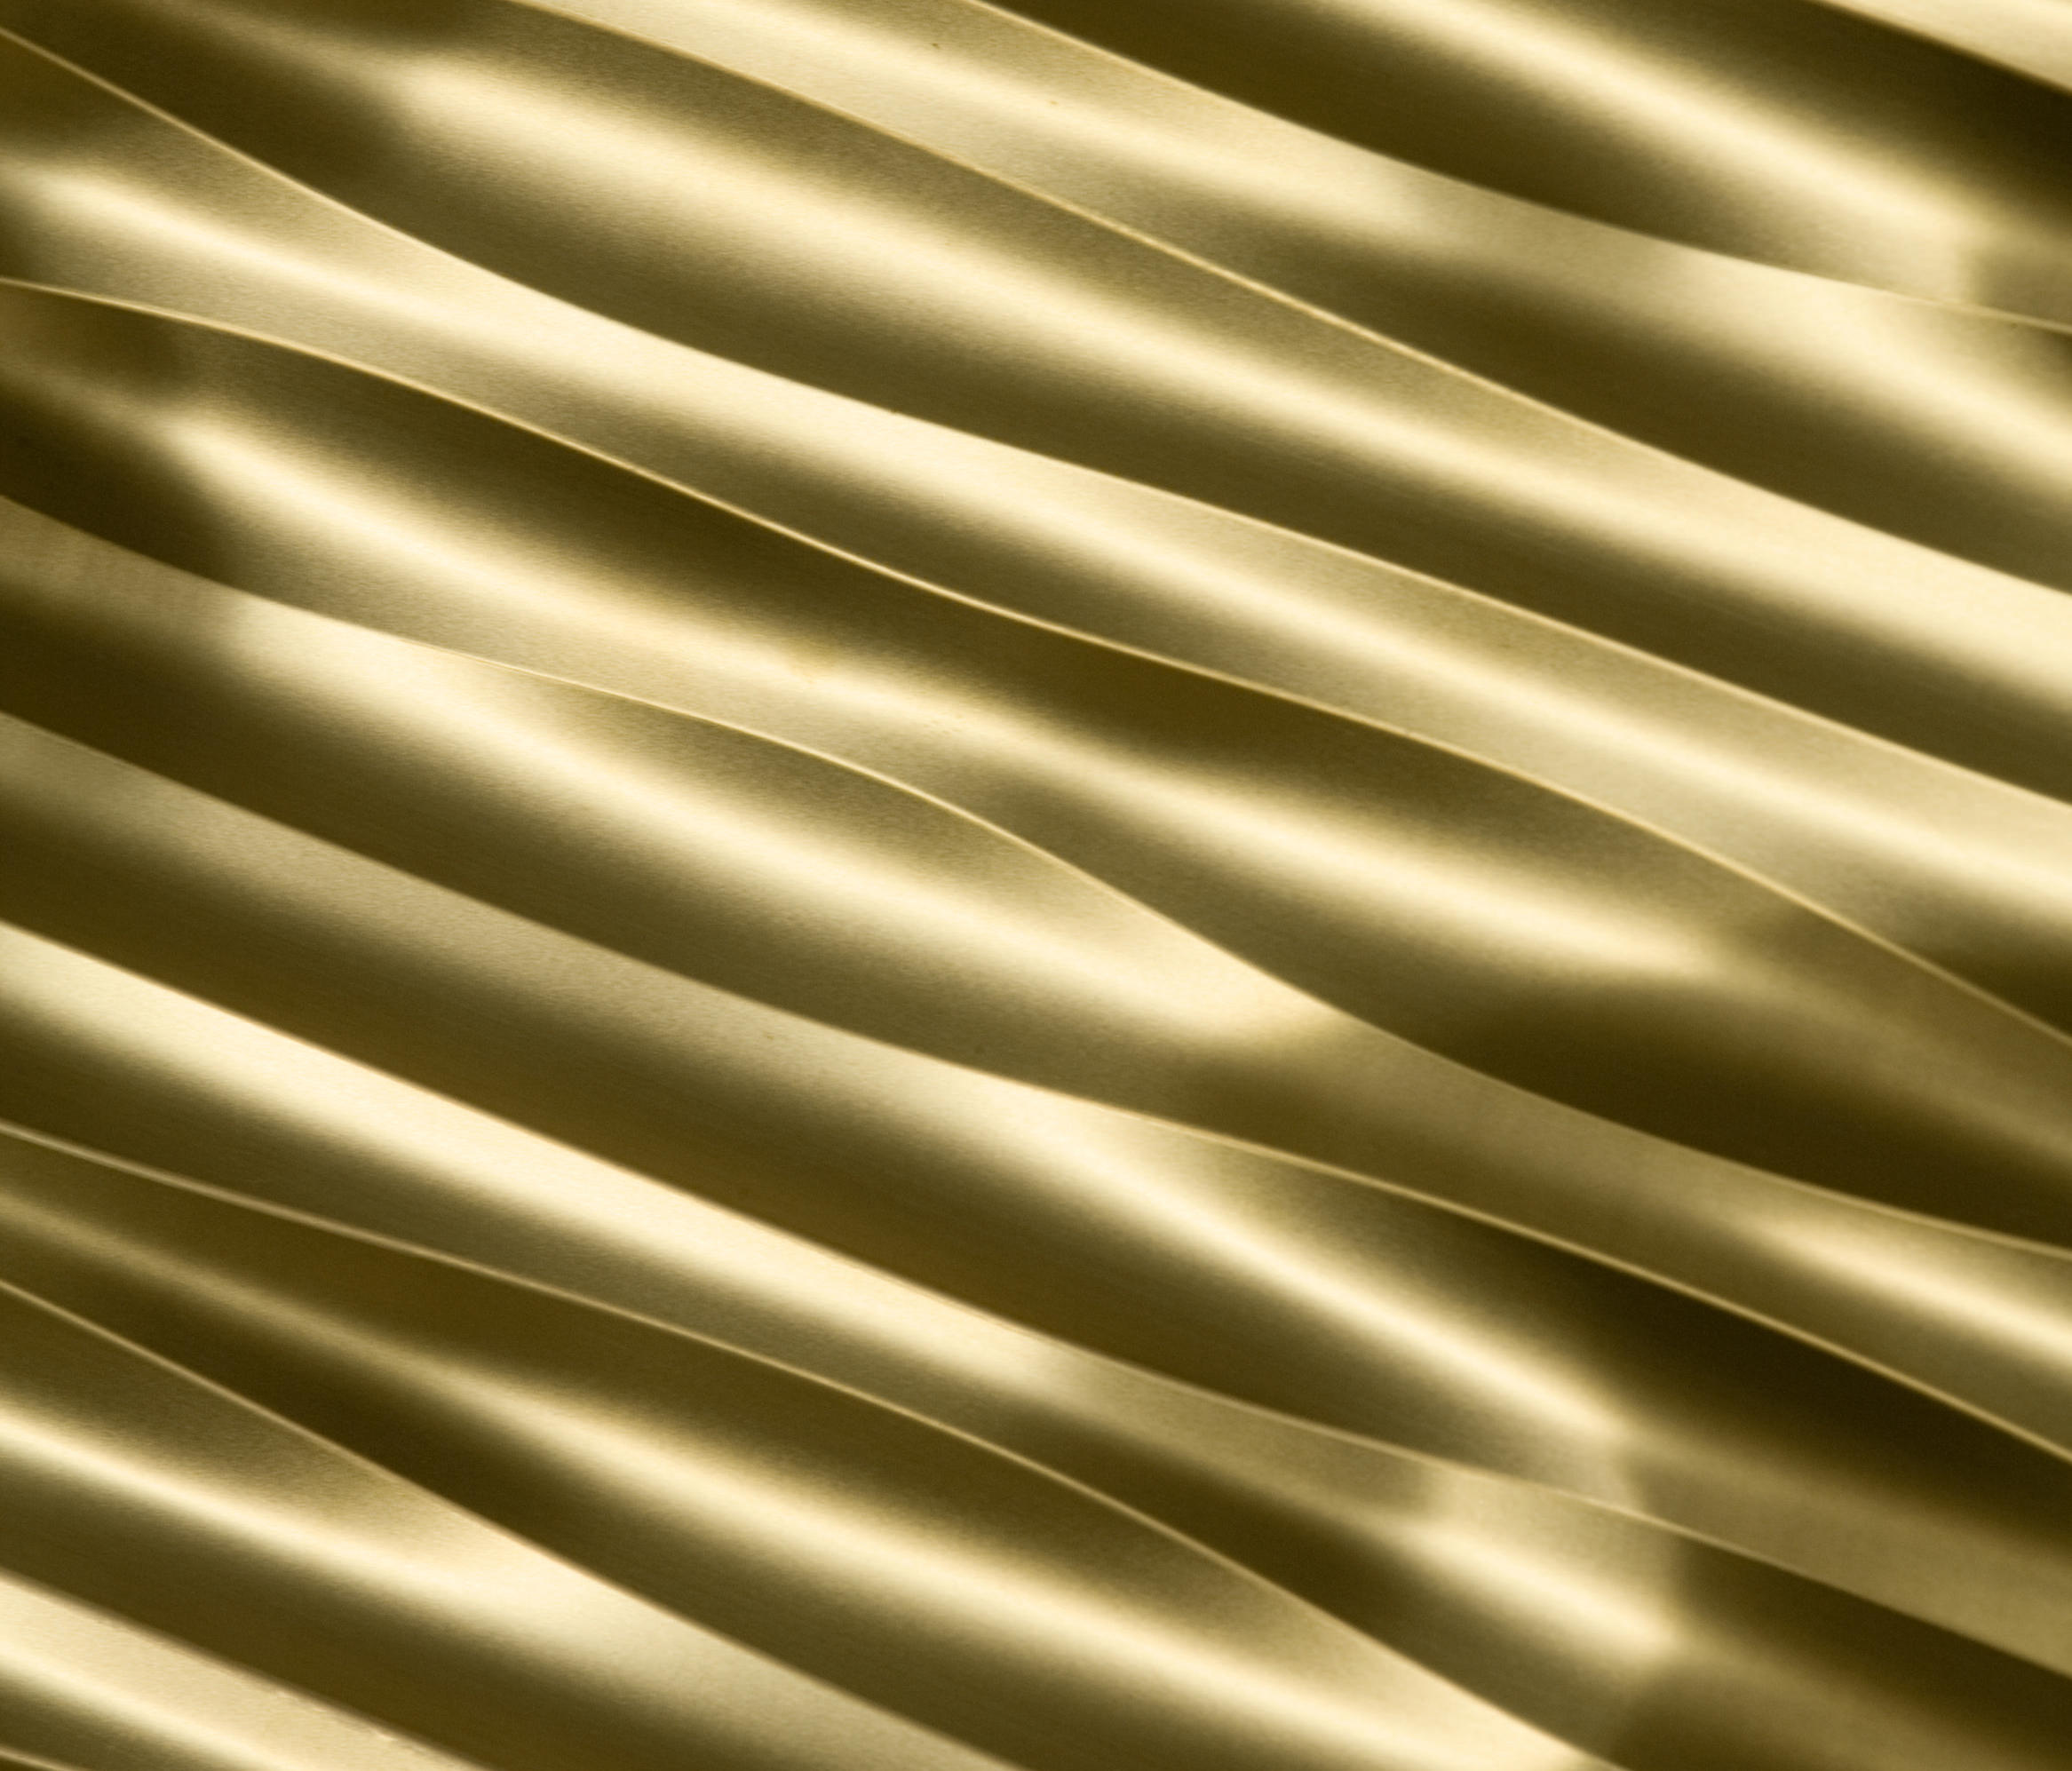 Tecu 174 Brass Shape Material Sheets From Kme Architonic